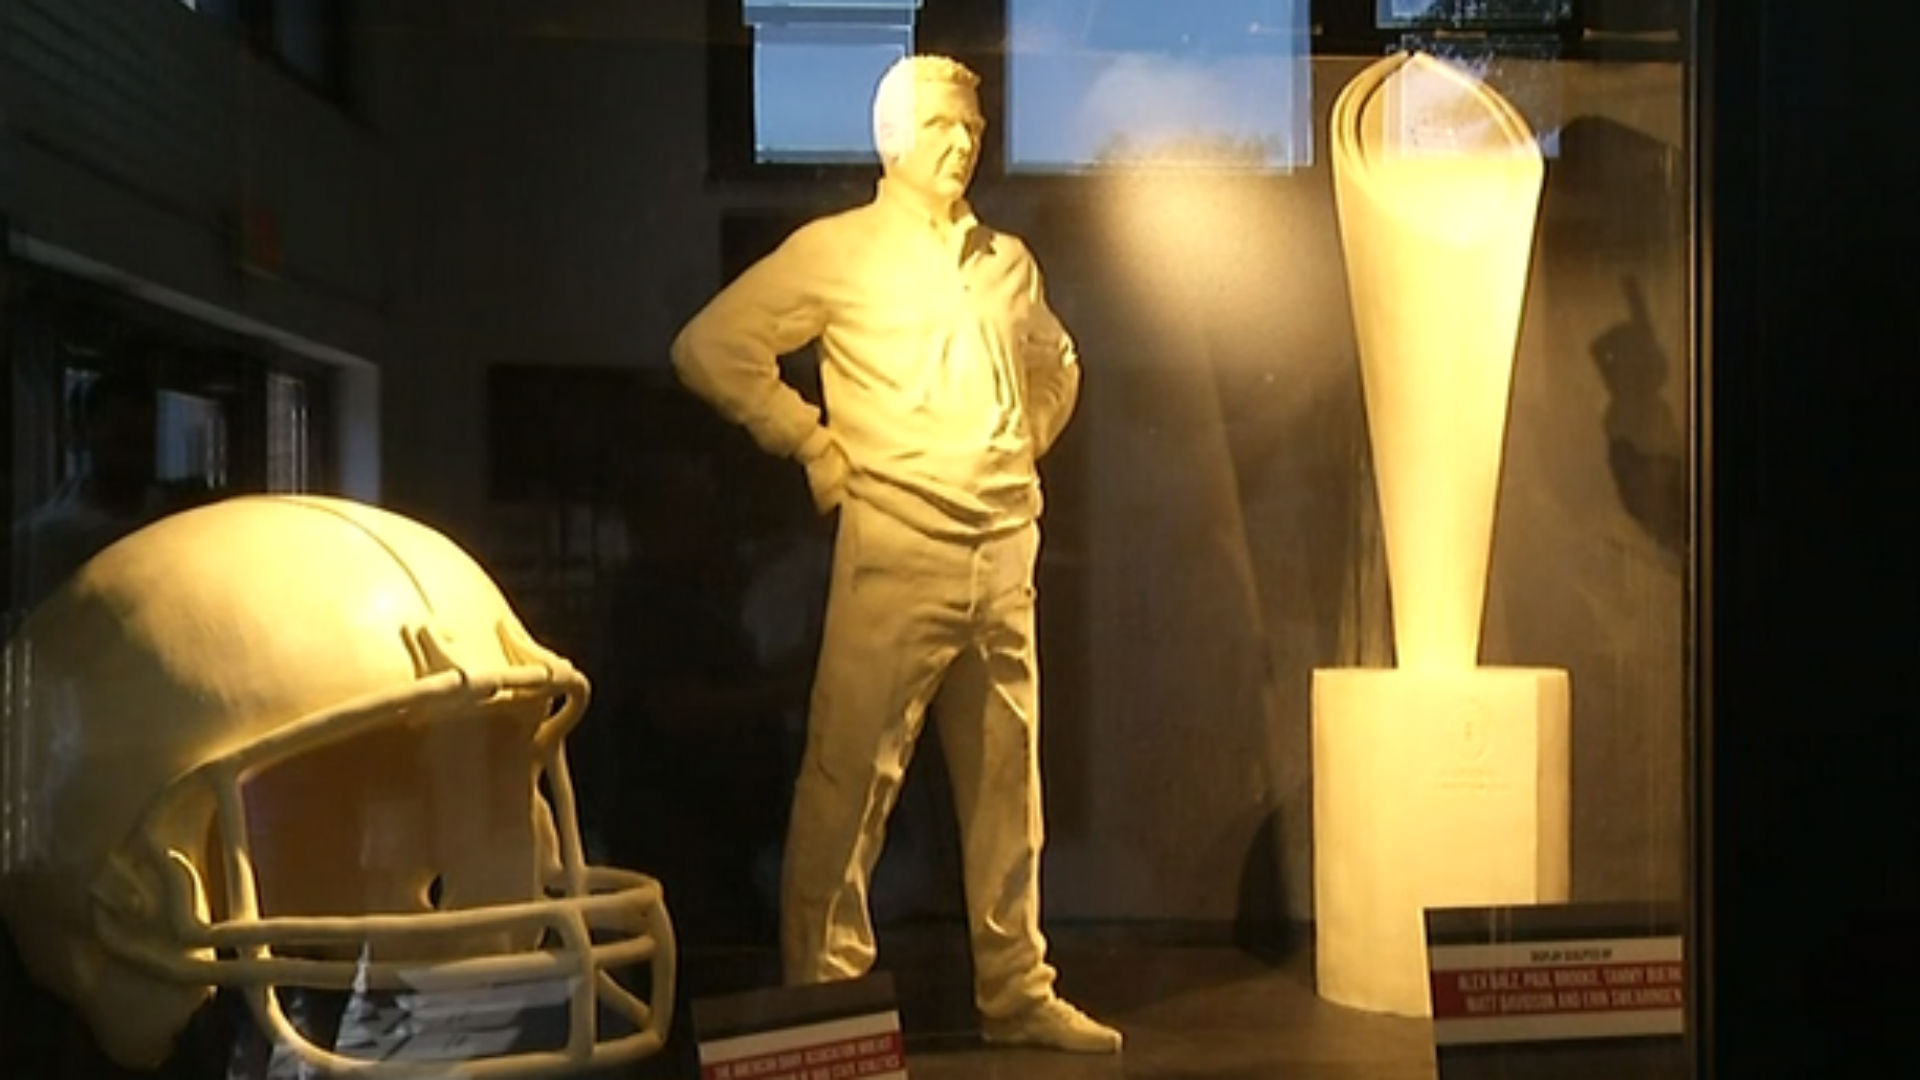 Butter believe it, Urban Meyer sculpture to display at state fair